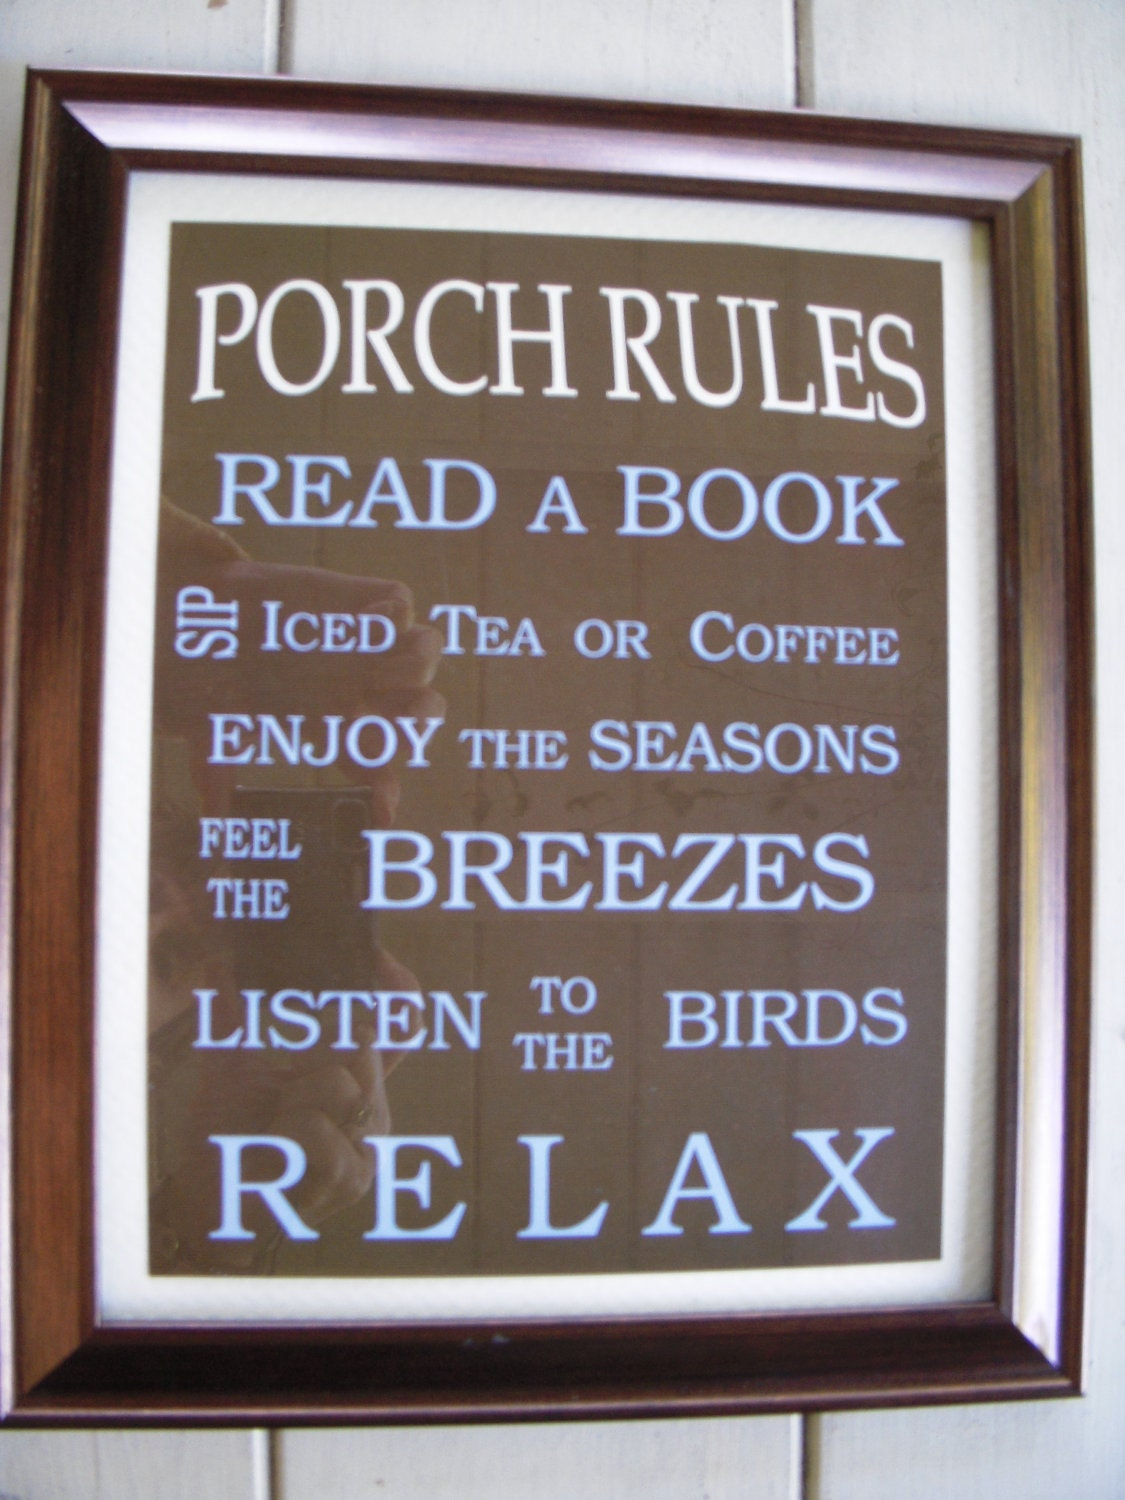 Mothers Day Porch Rules Framed Sign Free Shipping. Safety Sign Signs Of Stroke. Elsa Support Signs. Create Your Own Print. Signs Clipart Signs Of Stroke. Wacky Murals. Capital Stickers. Discount Wall Murals. Buy Posters Online Cheap